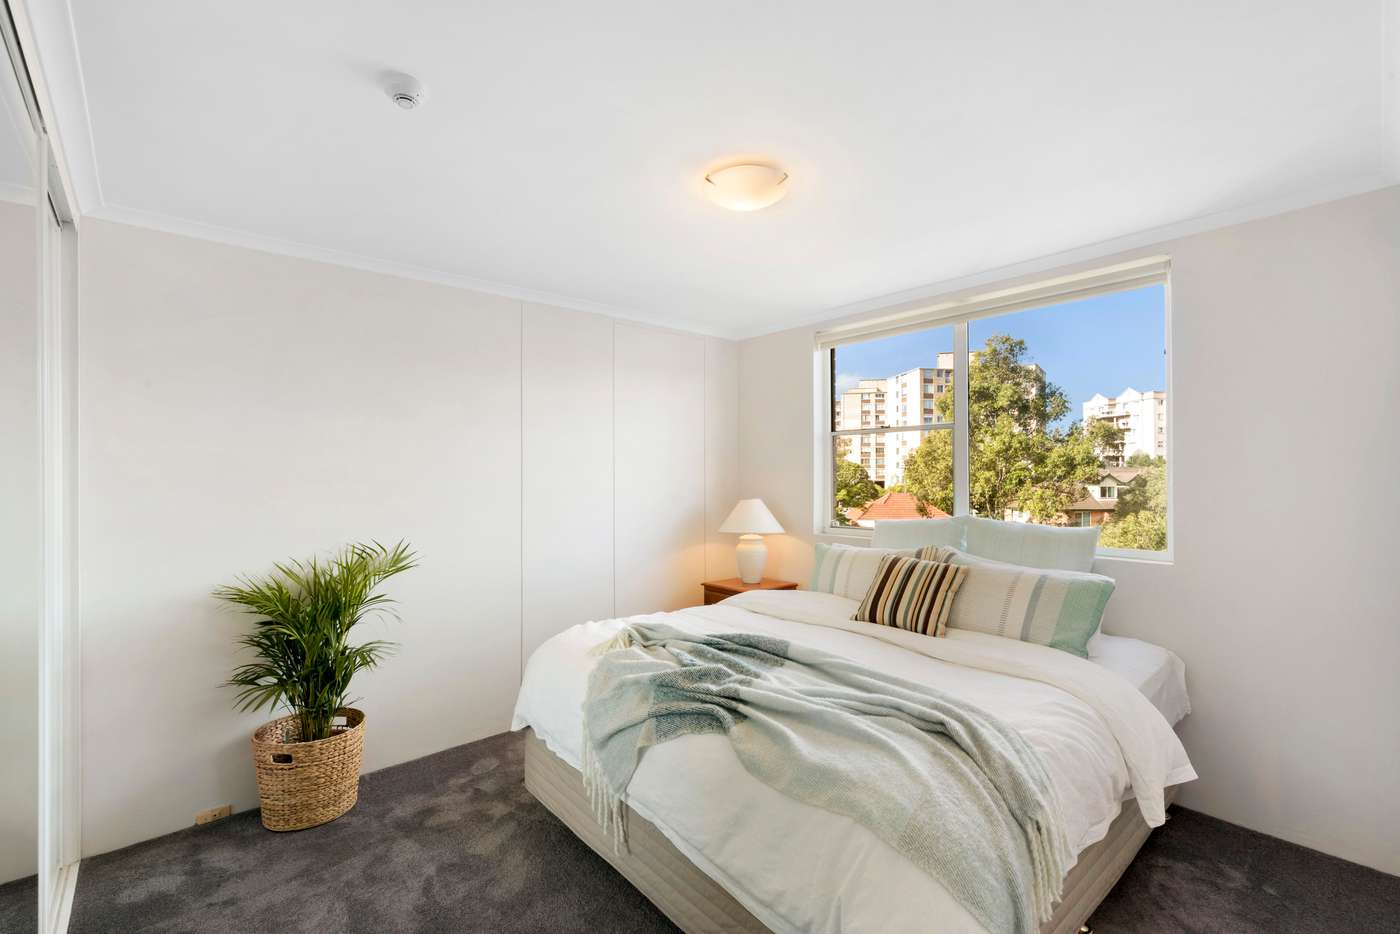 Fifth view of Homely apartment listing, 9/6-12 Prospect Avenue, Cremorne NSW 2090